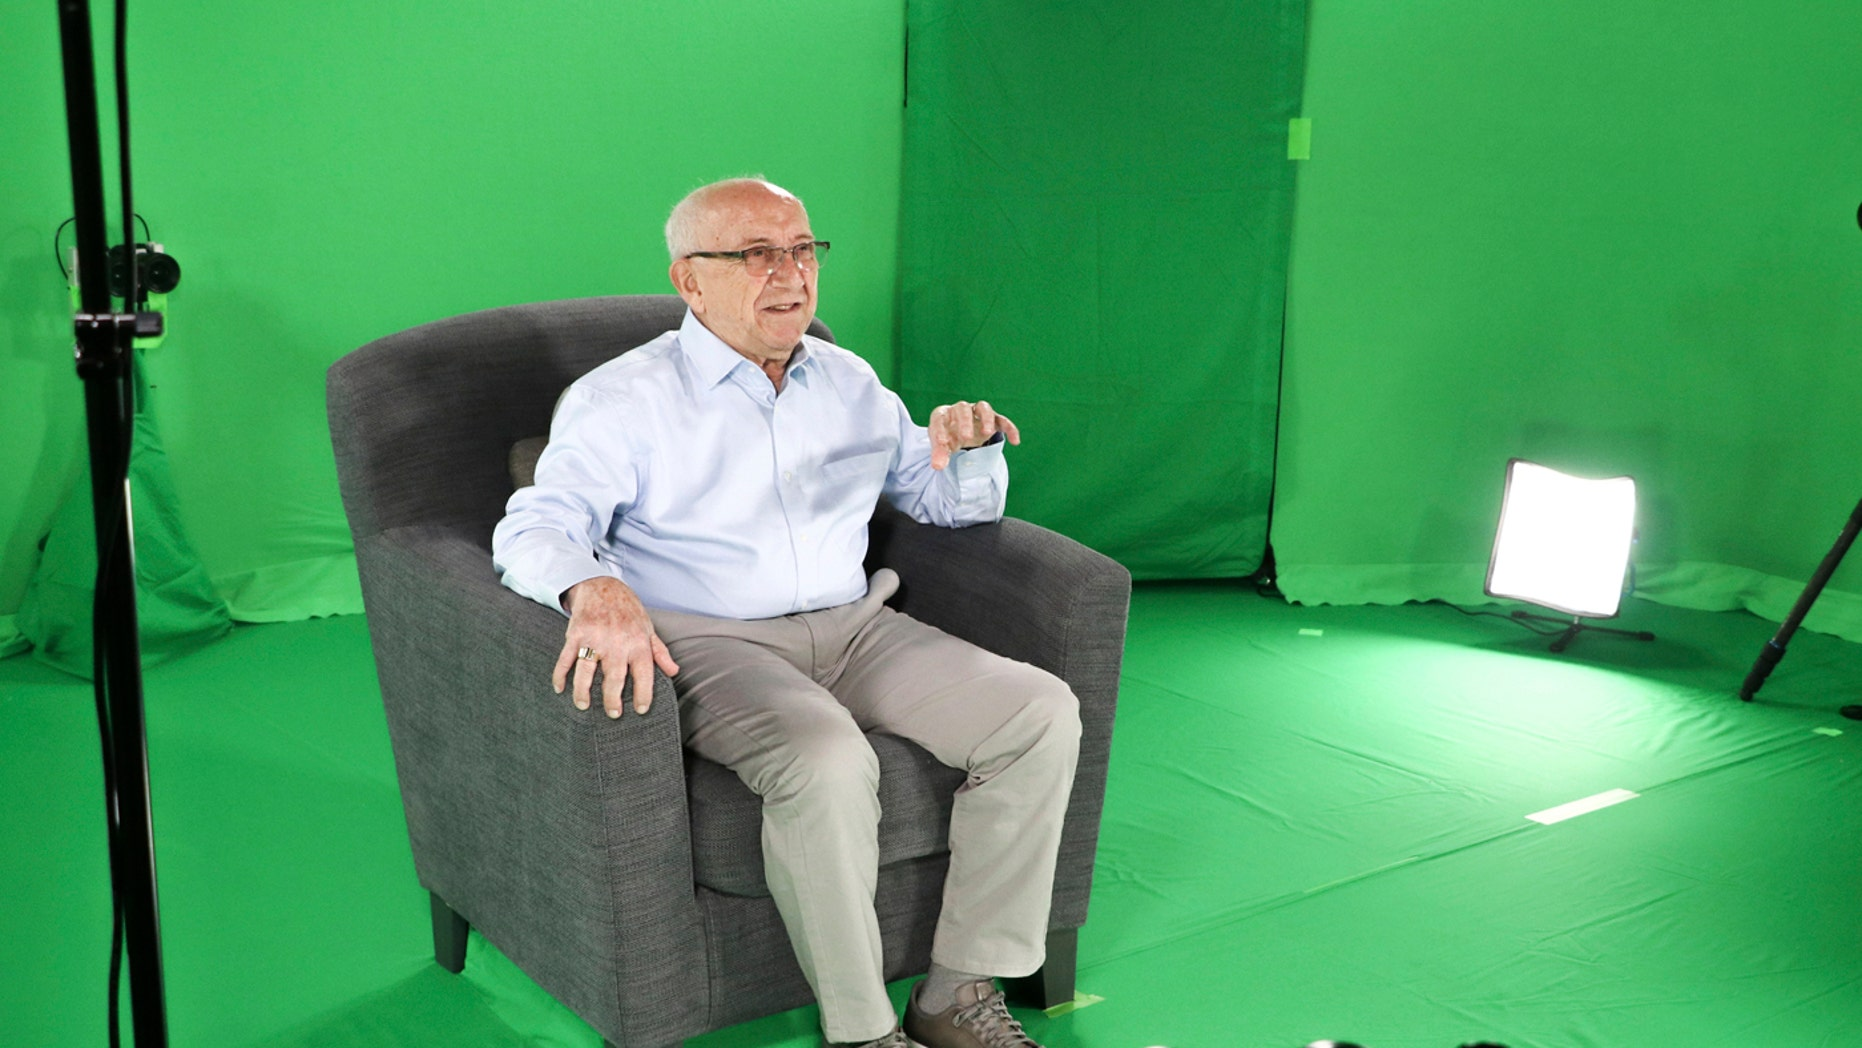 This August 2018 photo shows Holocaust survivor Max Glauben sitting in an interactive green screen room while filming a piece for the Dallas Holocaust Museum in Dallas.